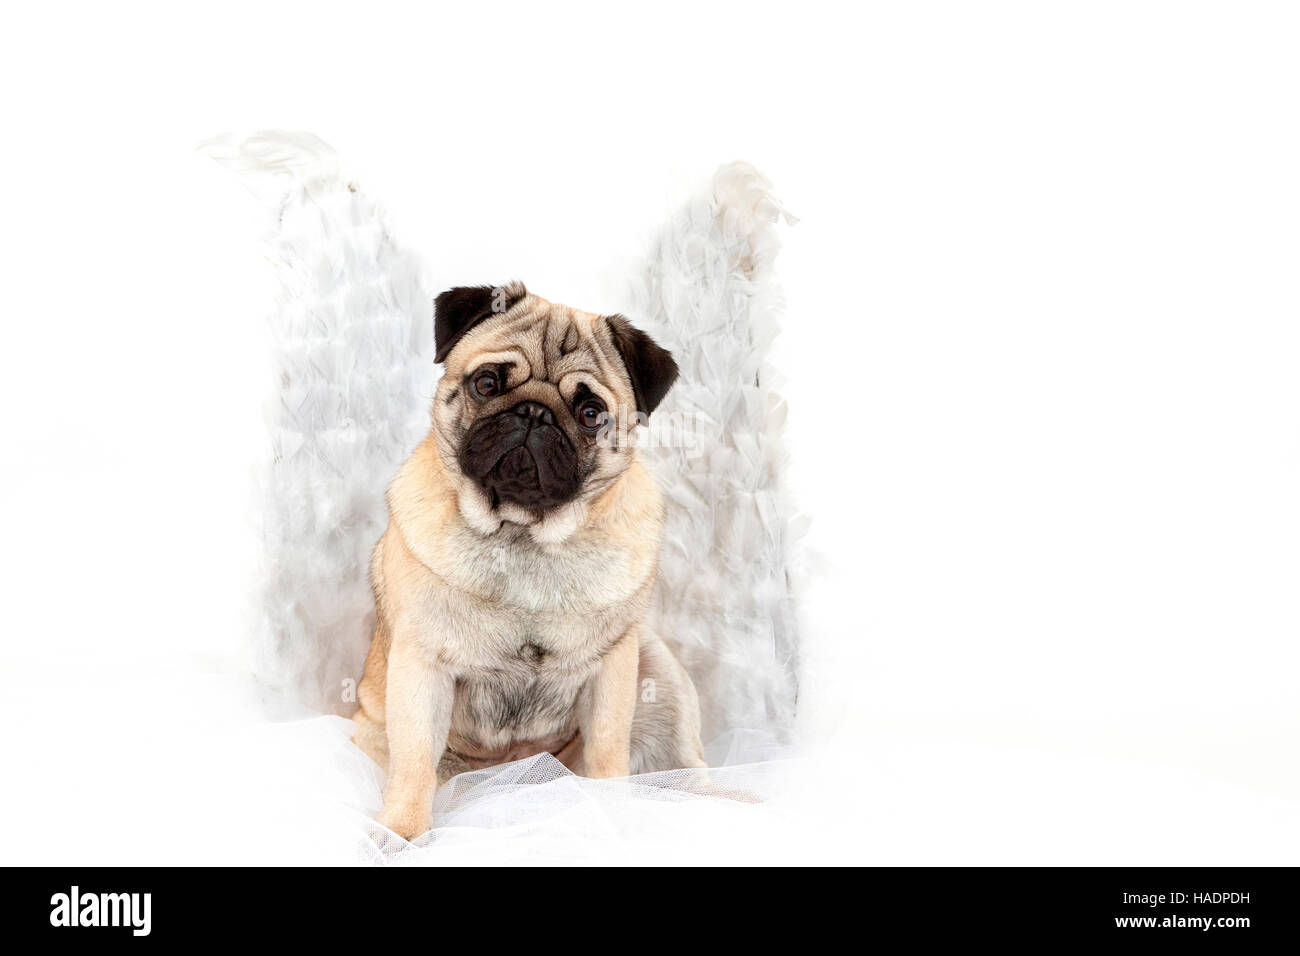 Pug. Adult male sitting, wearing angels wings.  Studio picture against a white background - Stock Image